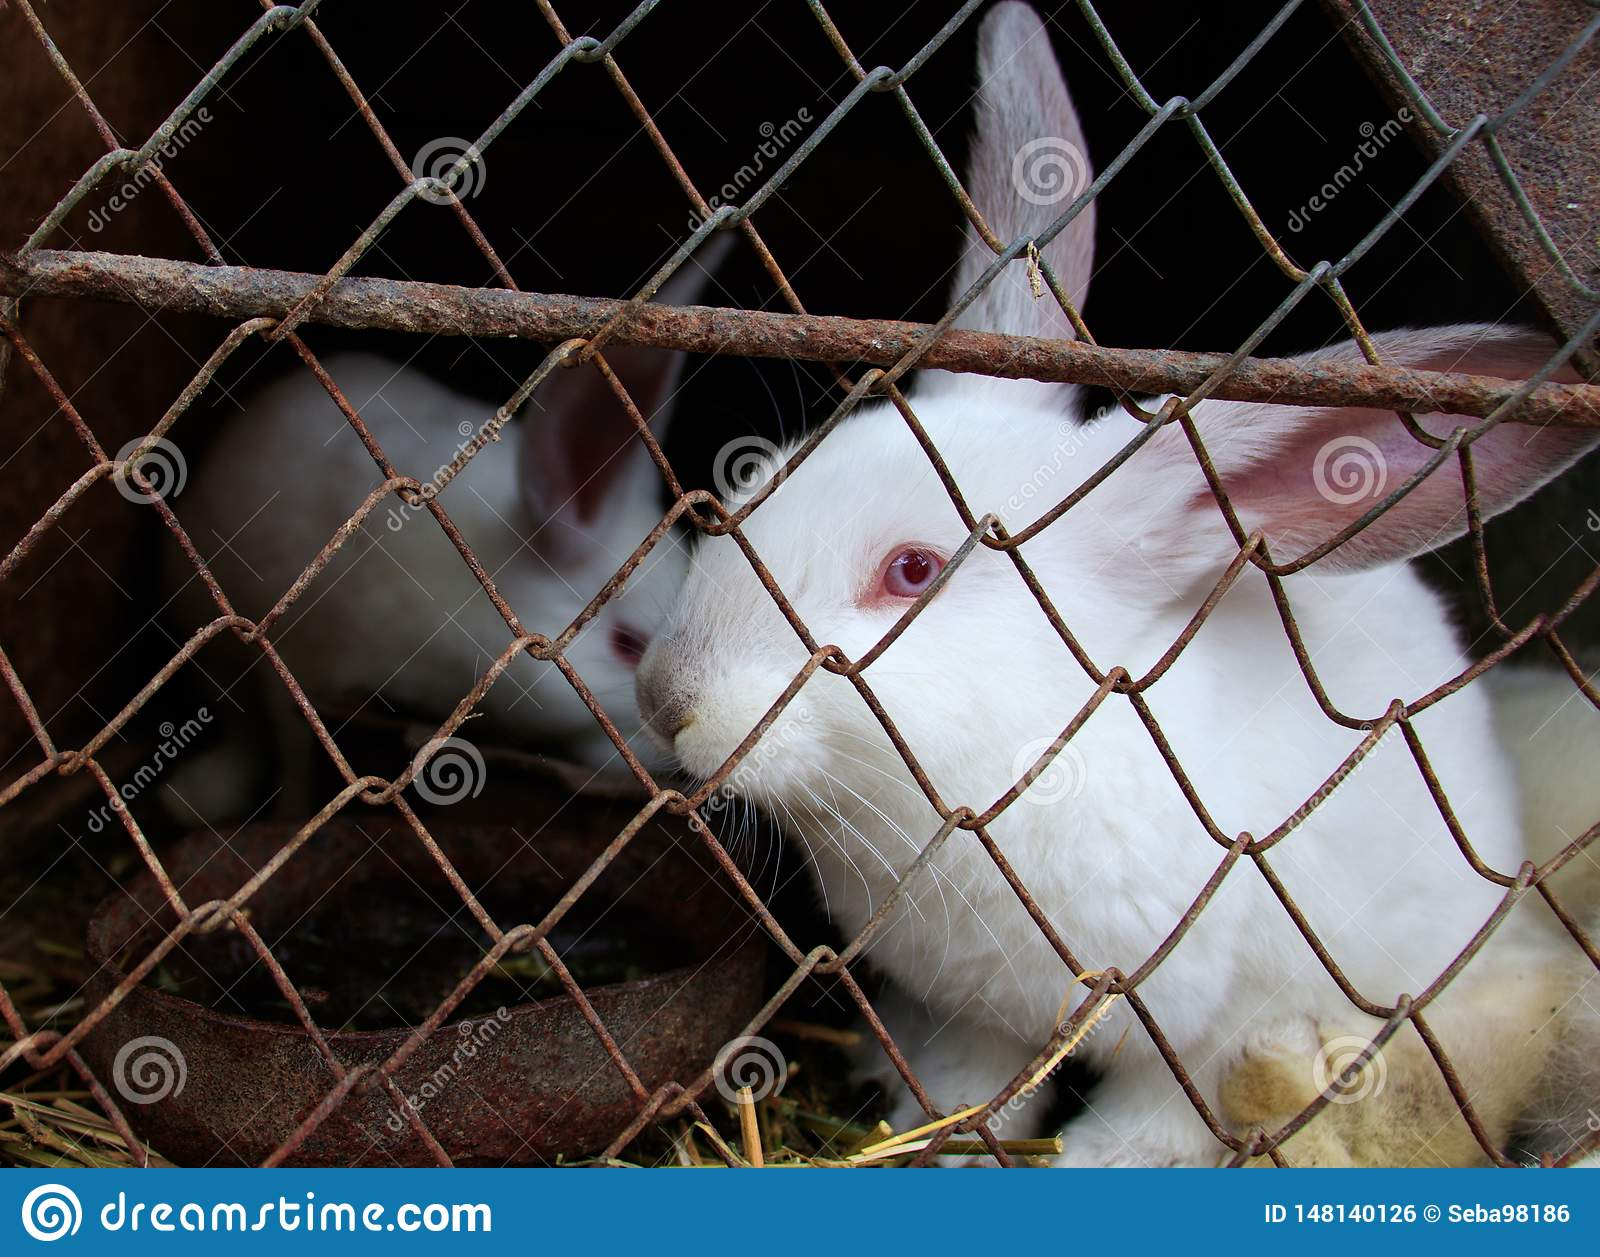 A white rabbit is sitting in the cage